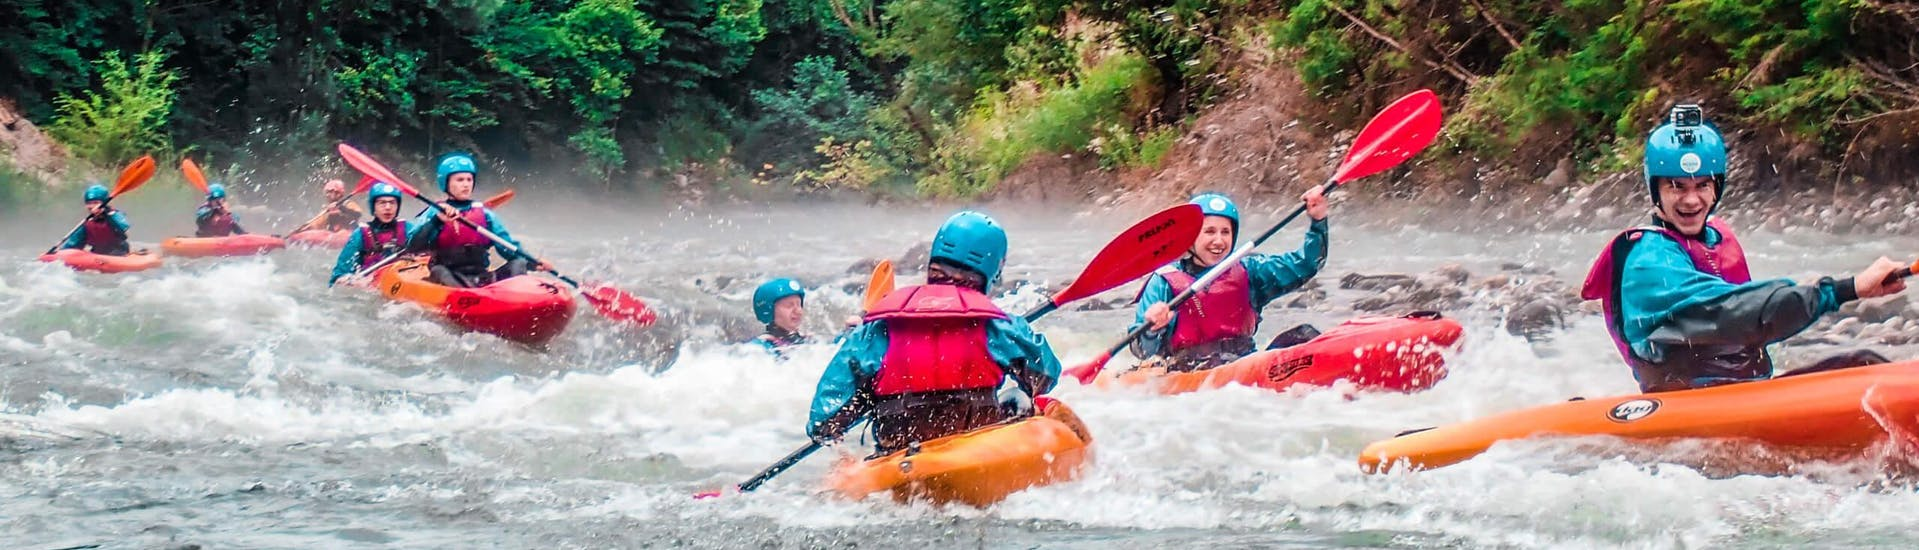 """A group oof kayaketrs is paddling on the river during Sit On Top Kayak Tour """"Classic"""" - Savinja organized by Funpark Menina"""